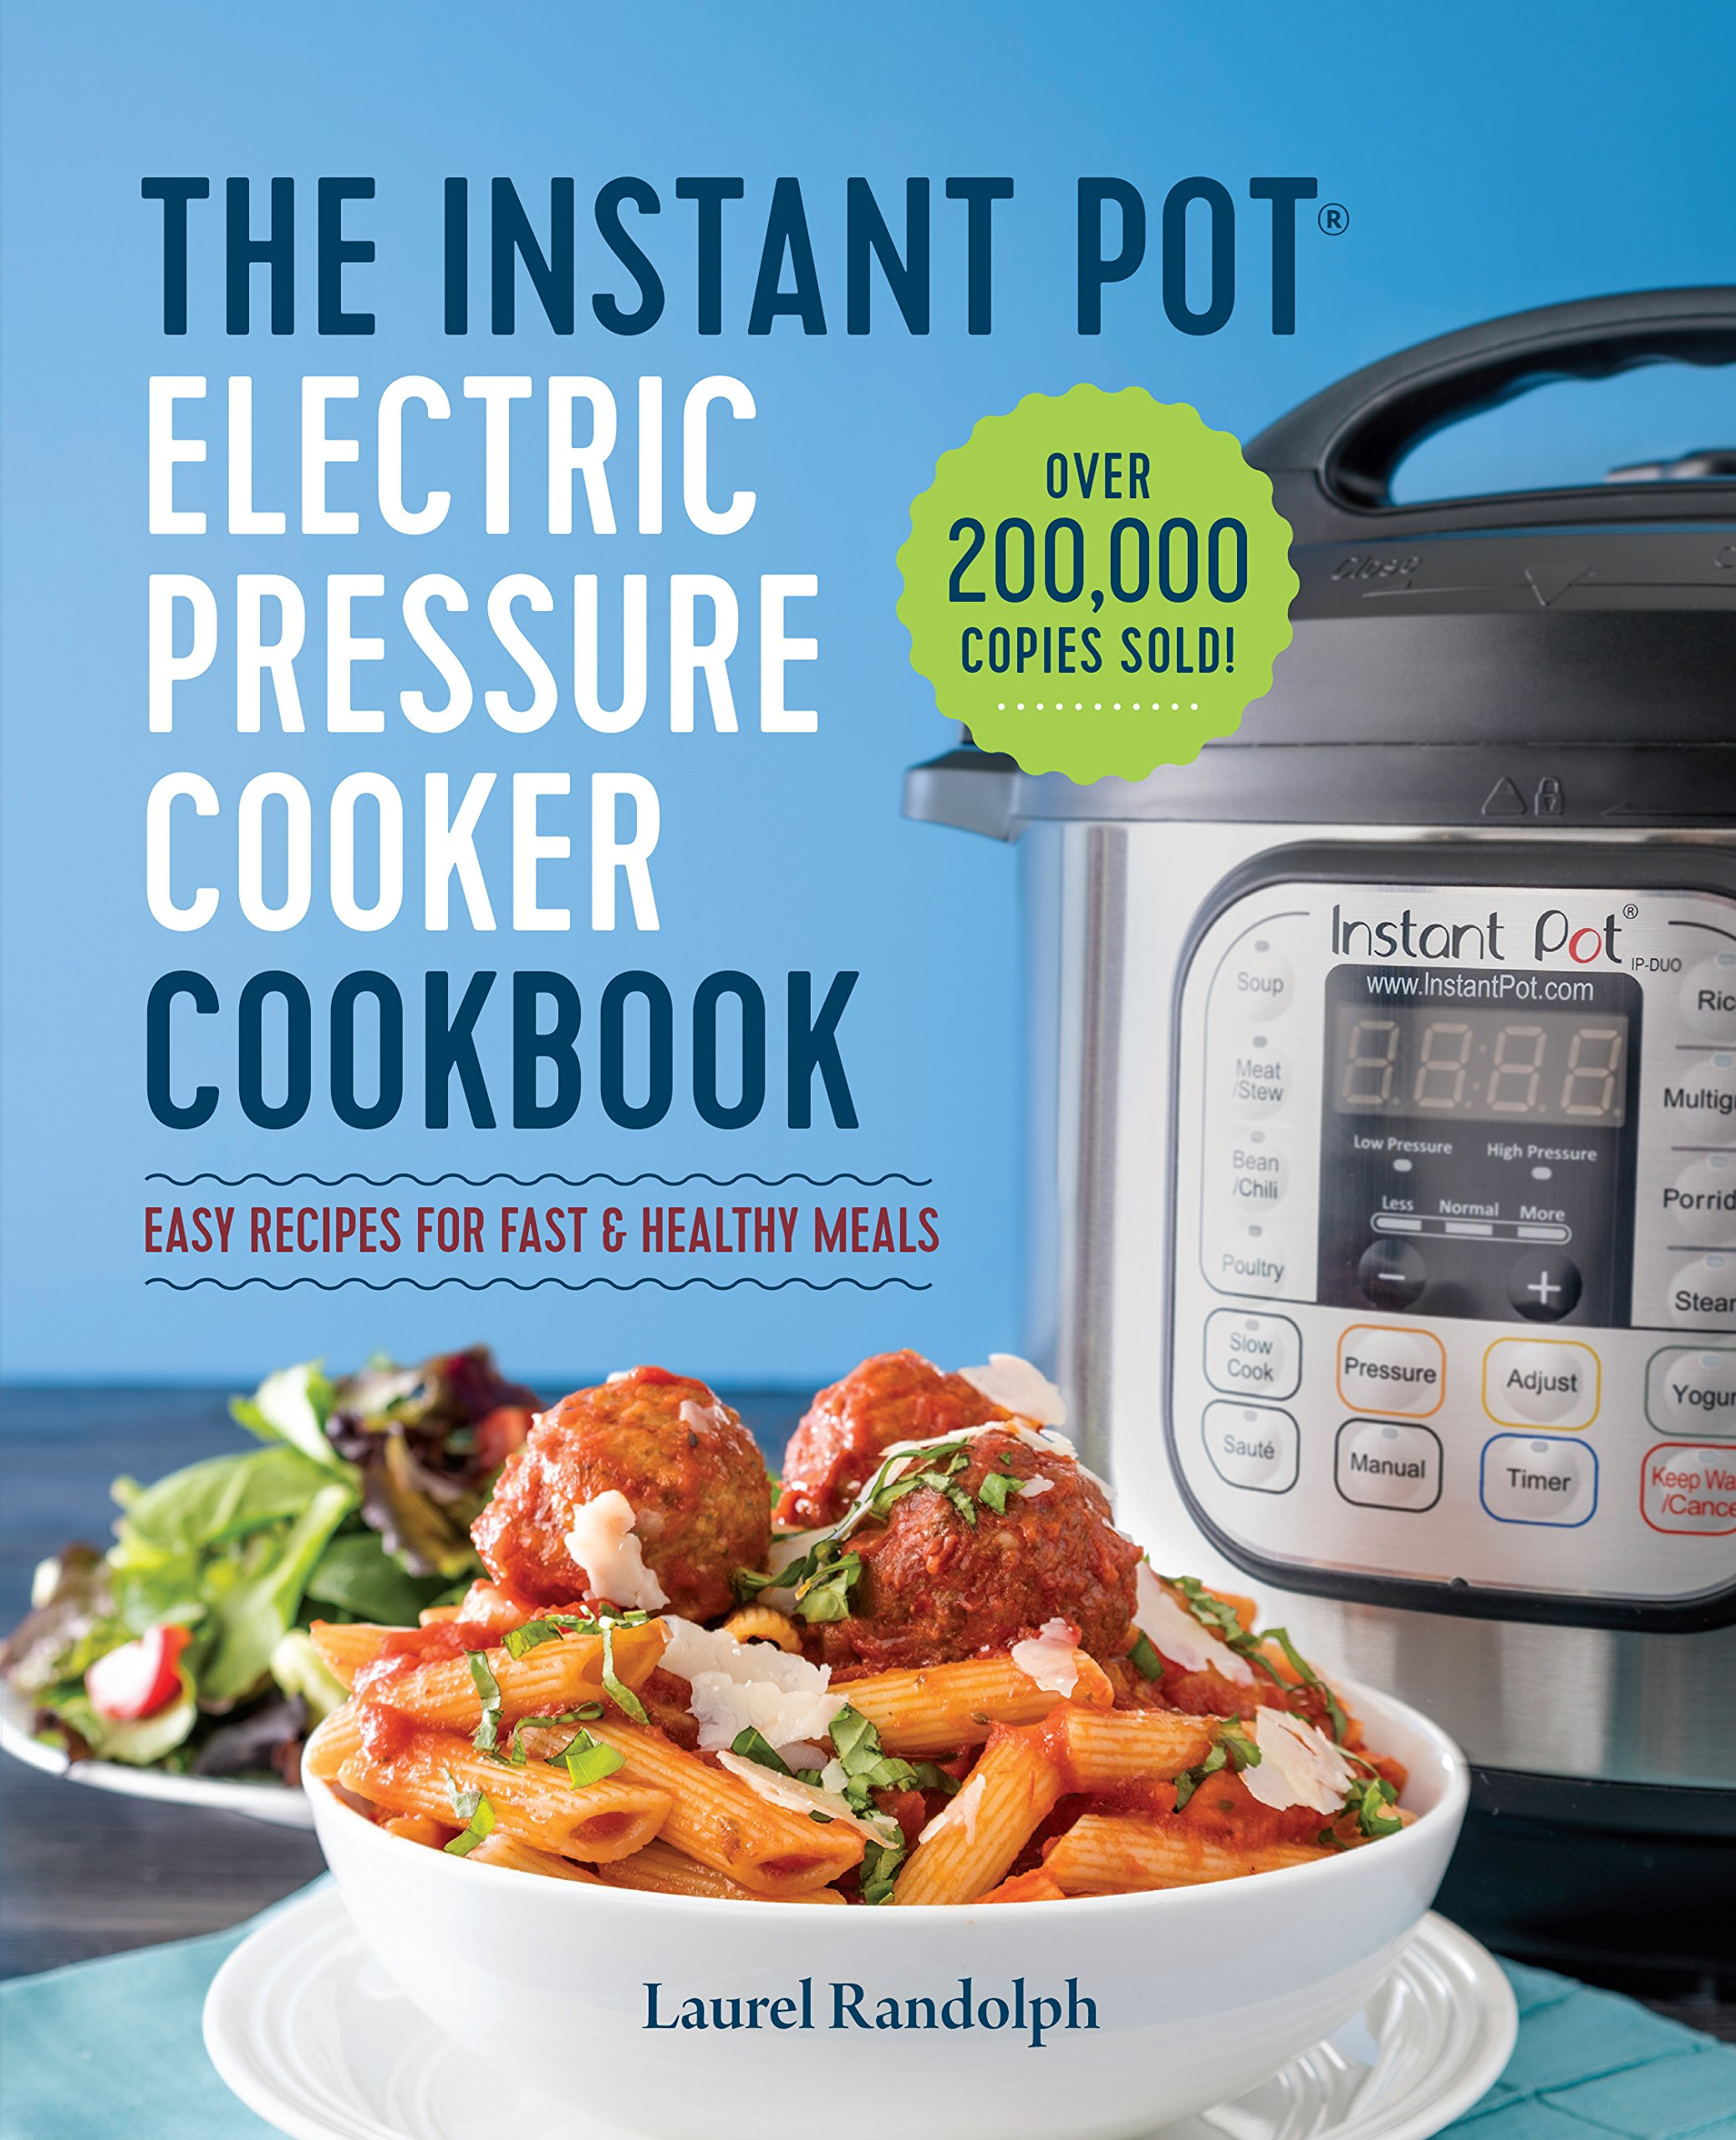 112 Of 32,667 Results For Books : Cookbooks, Food & Wine : Cooking Methods